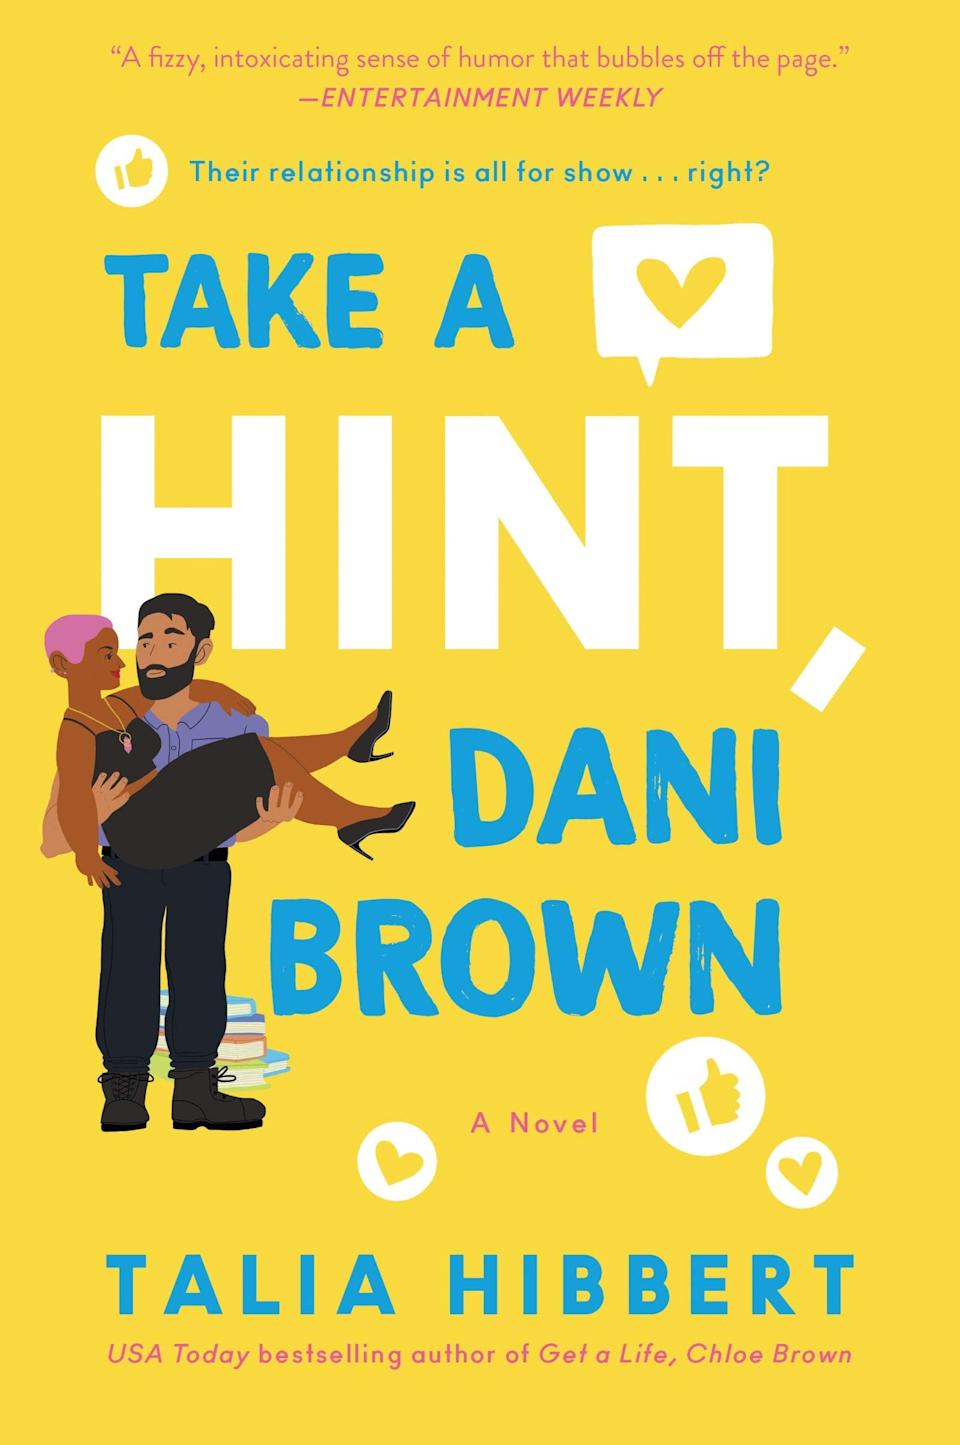 "<p>If you're a competitive, opinionated Aries, you'll most likely relate to the self-assured and ambitious heroine of Talia Hibbert's <span><strong>Take a Hint, Dani Brown</strong></span>. Dani is an ambitious PhD student with her life all planned out, no time for games, and a strict no-romance policy - only no-strings-attached hookups are allowed! All that goes out the window when her building's hot, reticent security guard, Zafir, ""rescues"" Dani during a fire drill gone wrong, the video goes viral, and the duo agree to stage a fake relationship for charity publicity. It's the perfect rom-com for an Aries who wants a romance that's full steam ahead (literally).</p>"